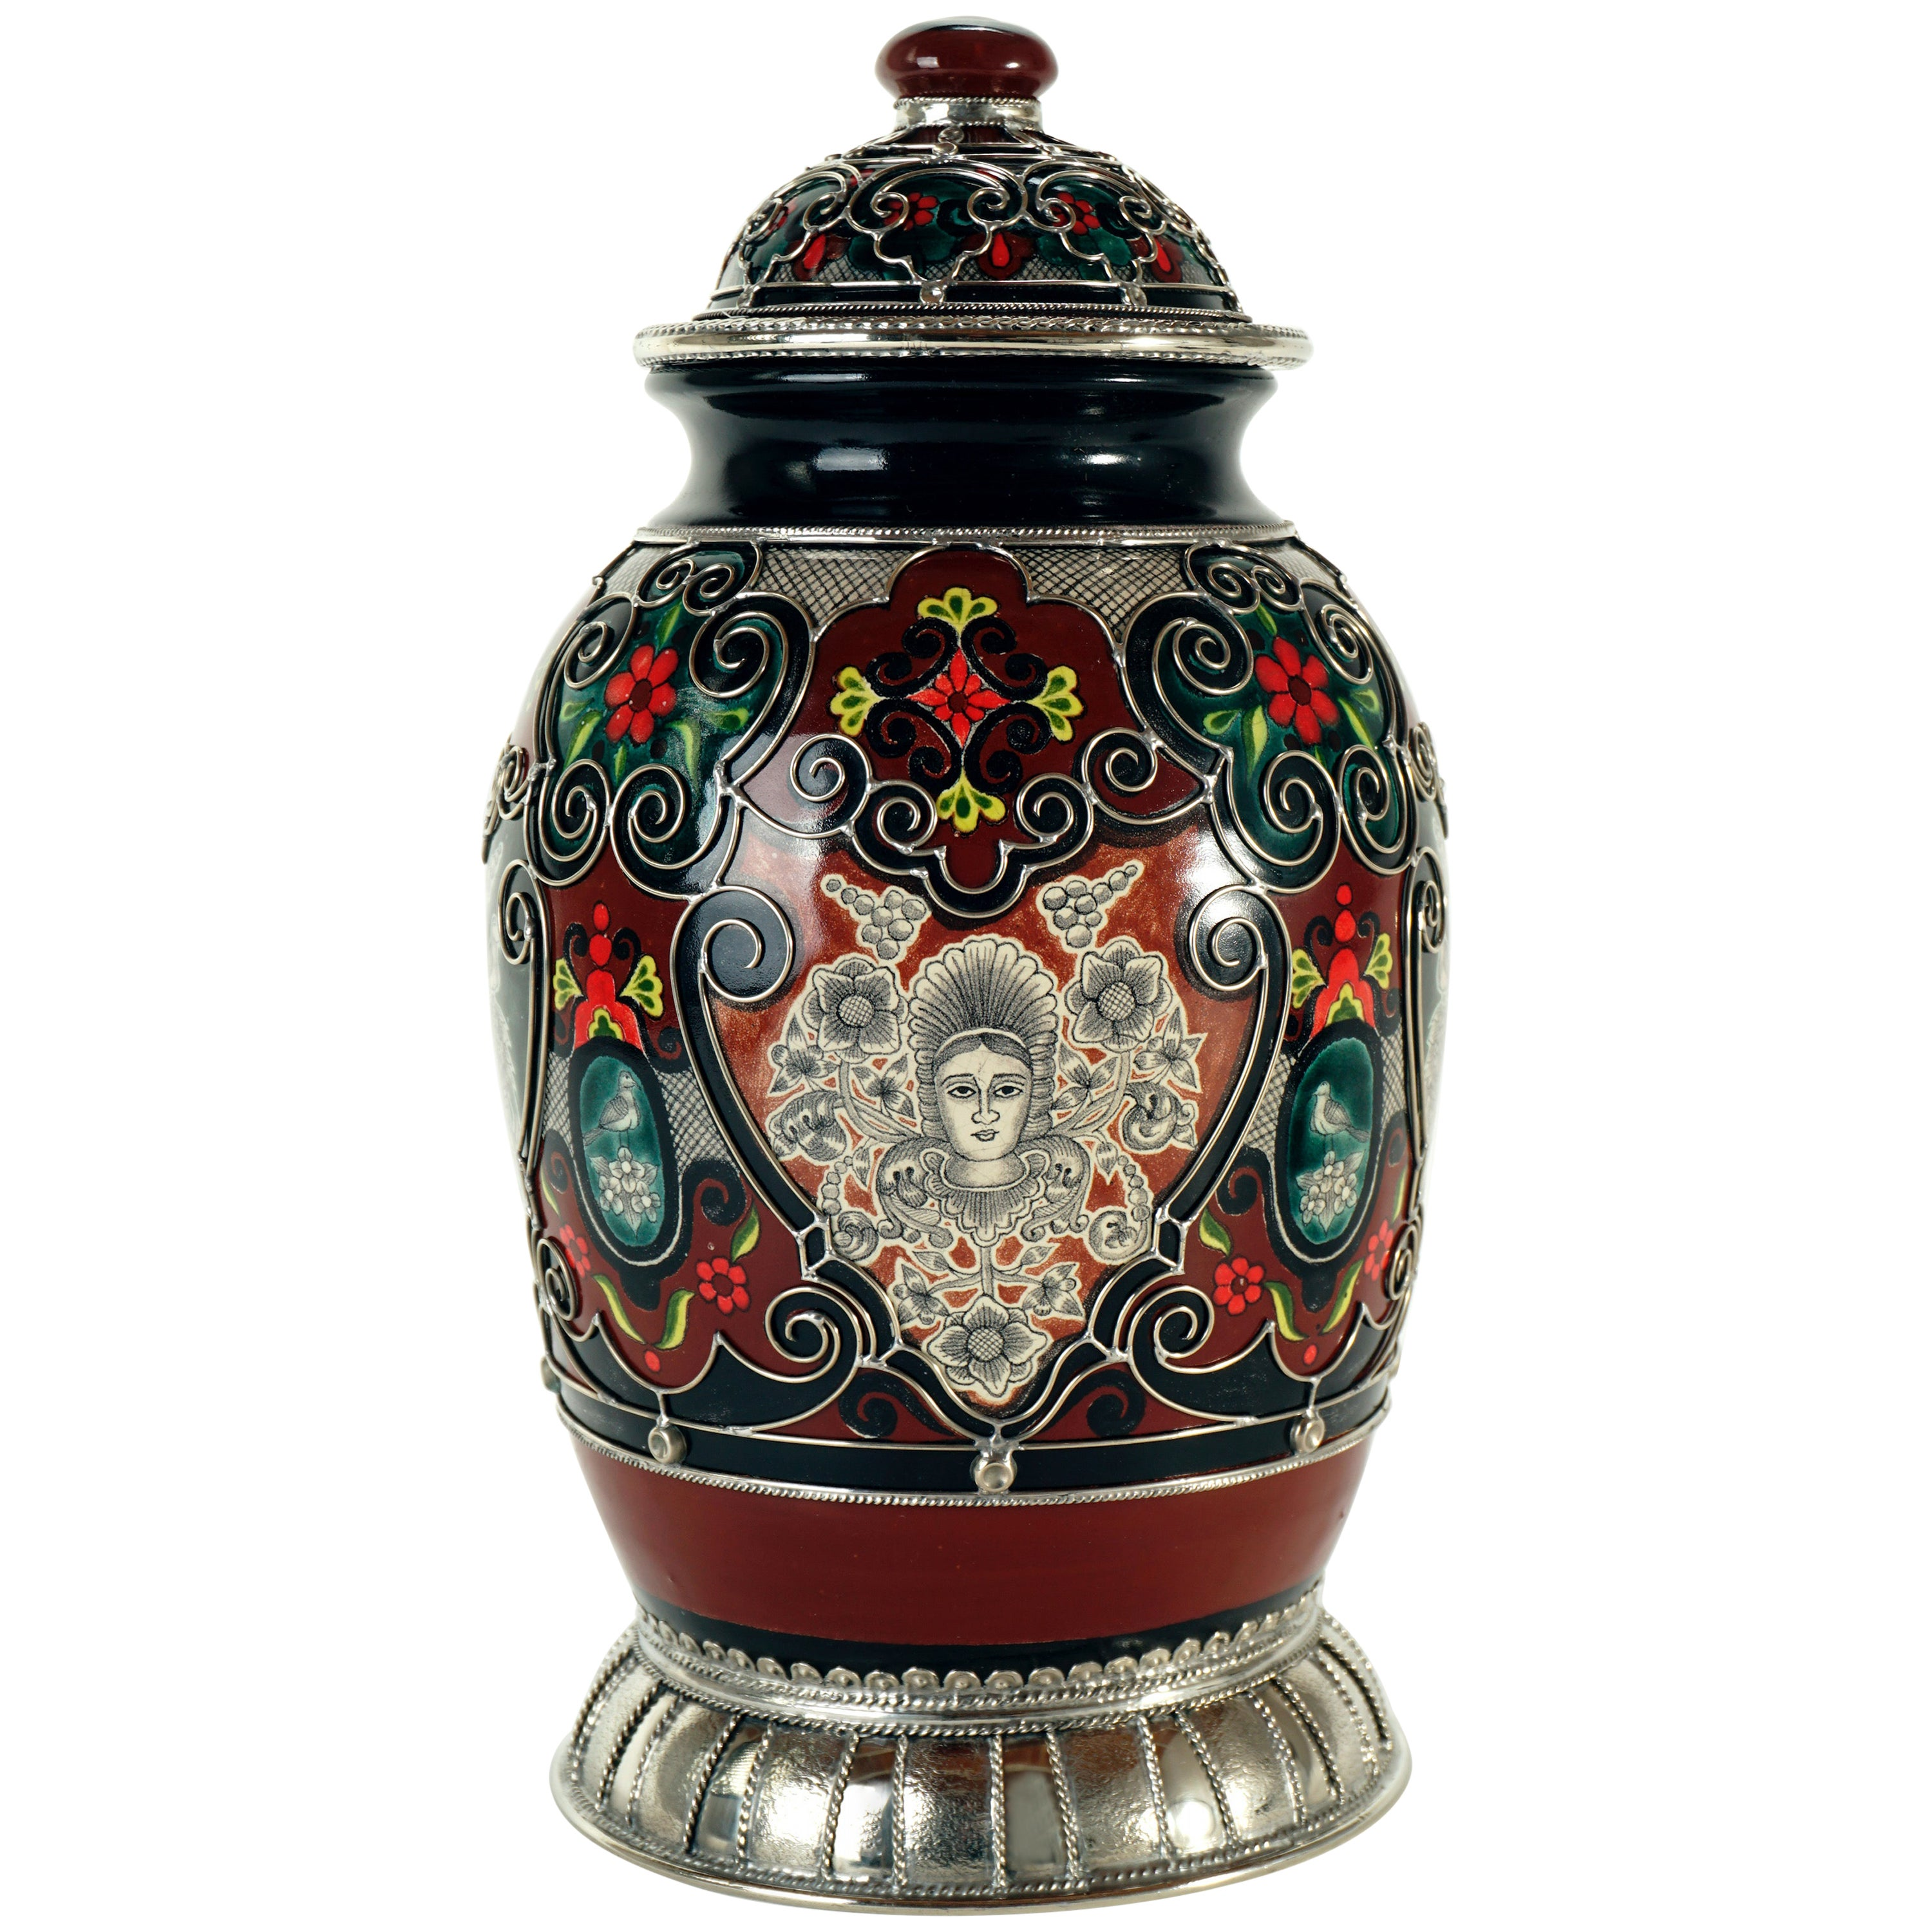 Ceramic and White Metal 'Alpaca' Jar with Hand Painted Motives